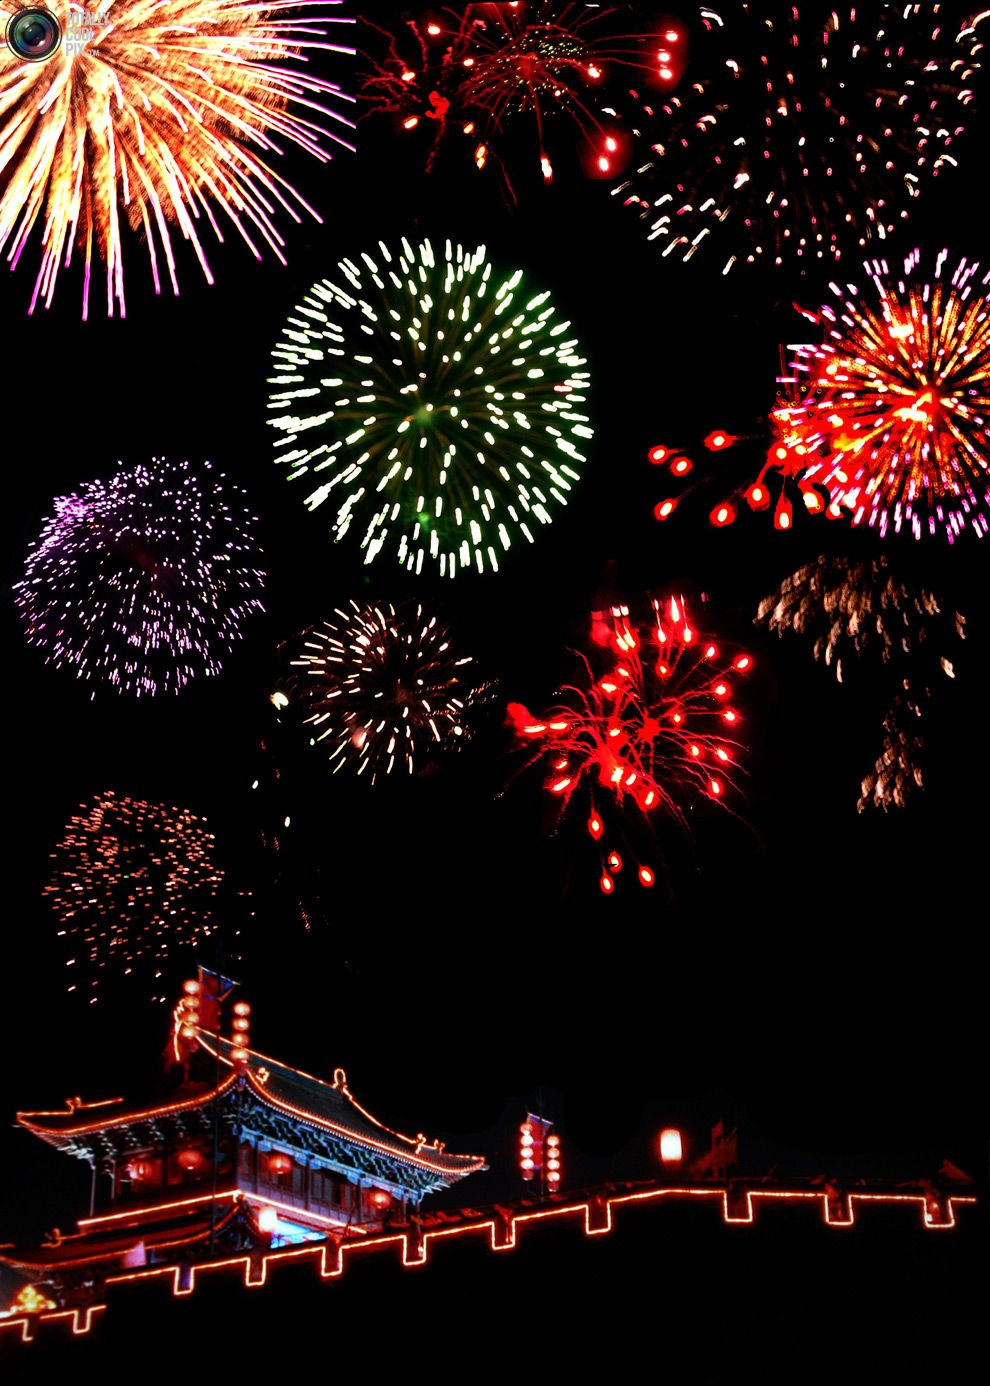 chinese firework Find and save ideas about chinese fireworks on pinterest | see more ideas about happy lunar new year, lunar year 2017 and rooster year.